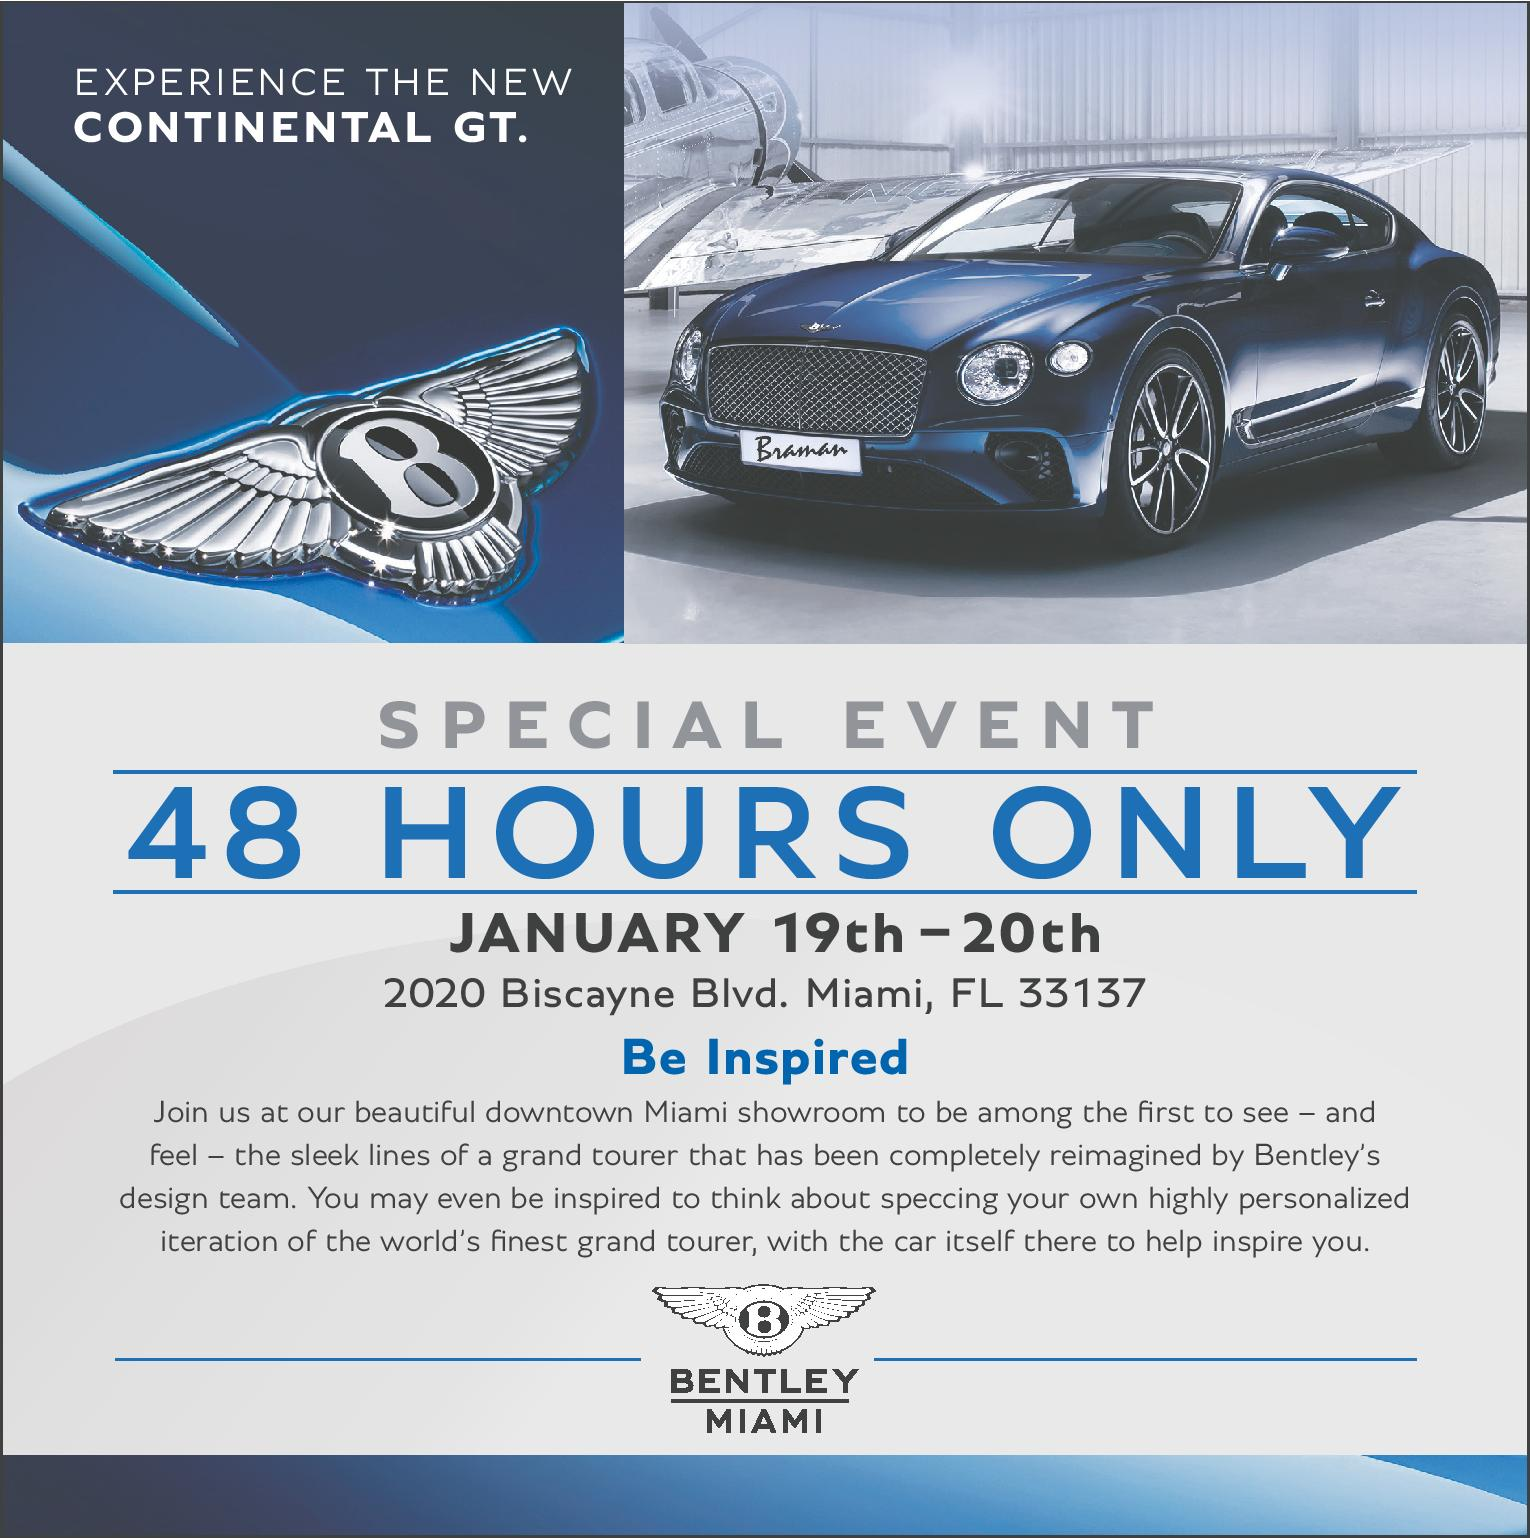 Miami Used Car Dealers Best Of Bentley Miami is A Miami Bentley Dealer and A New Car and Used Car